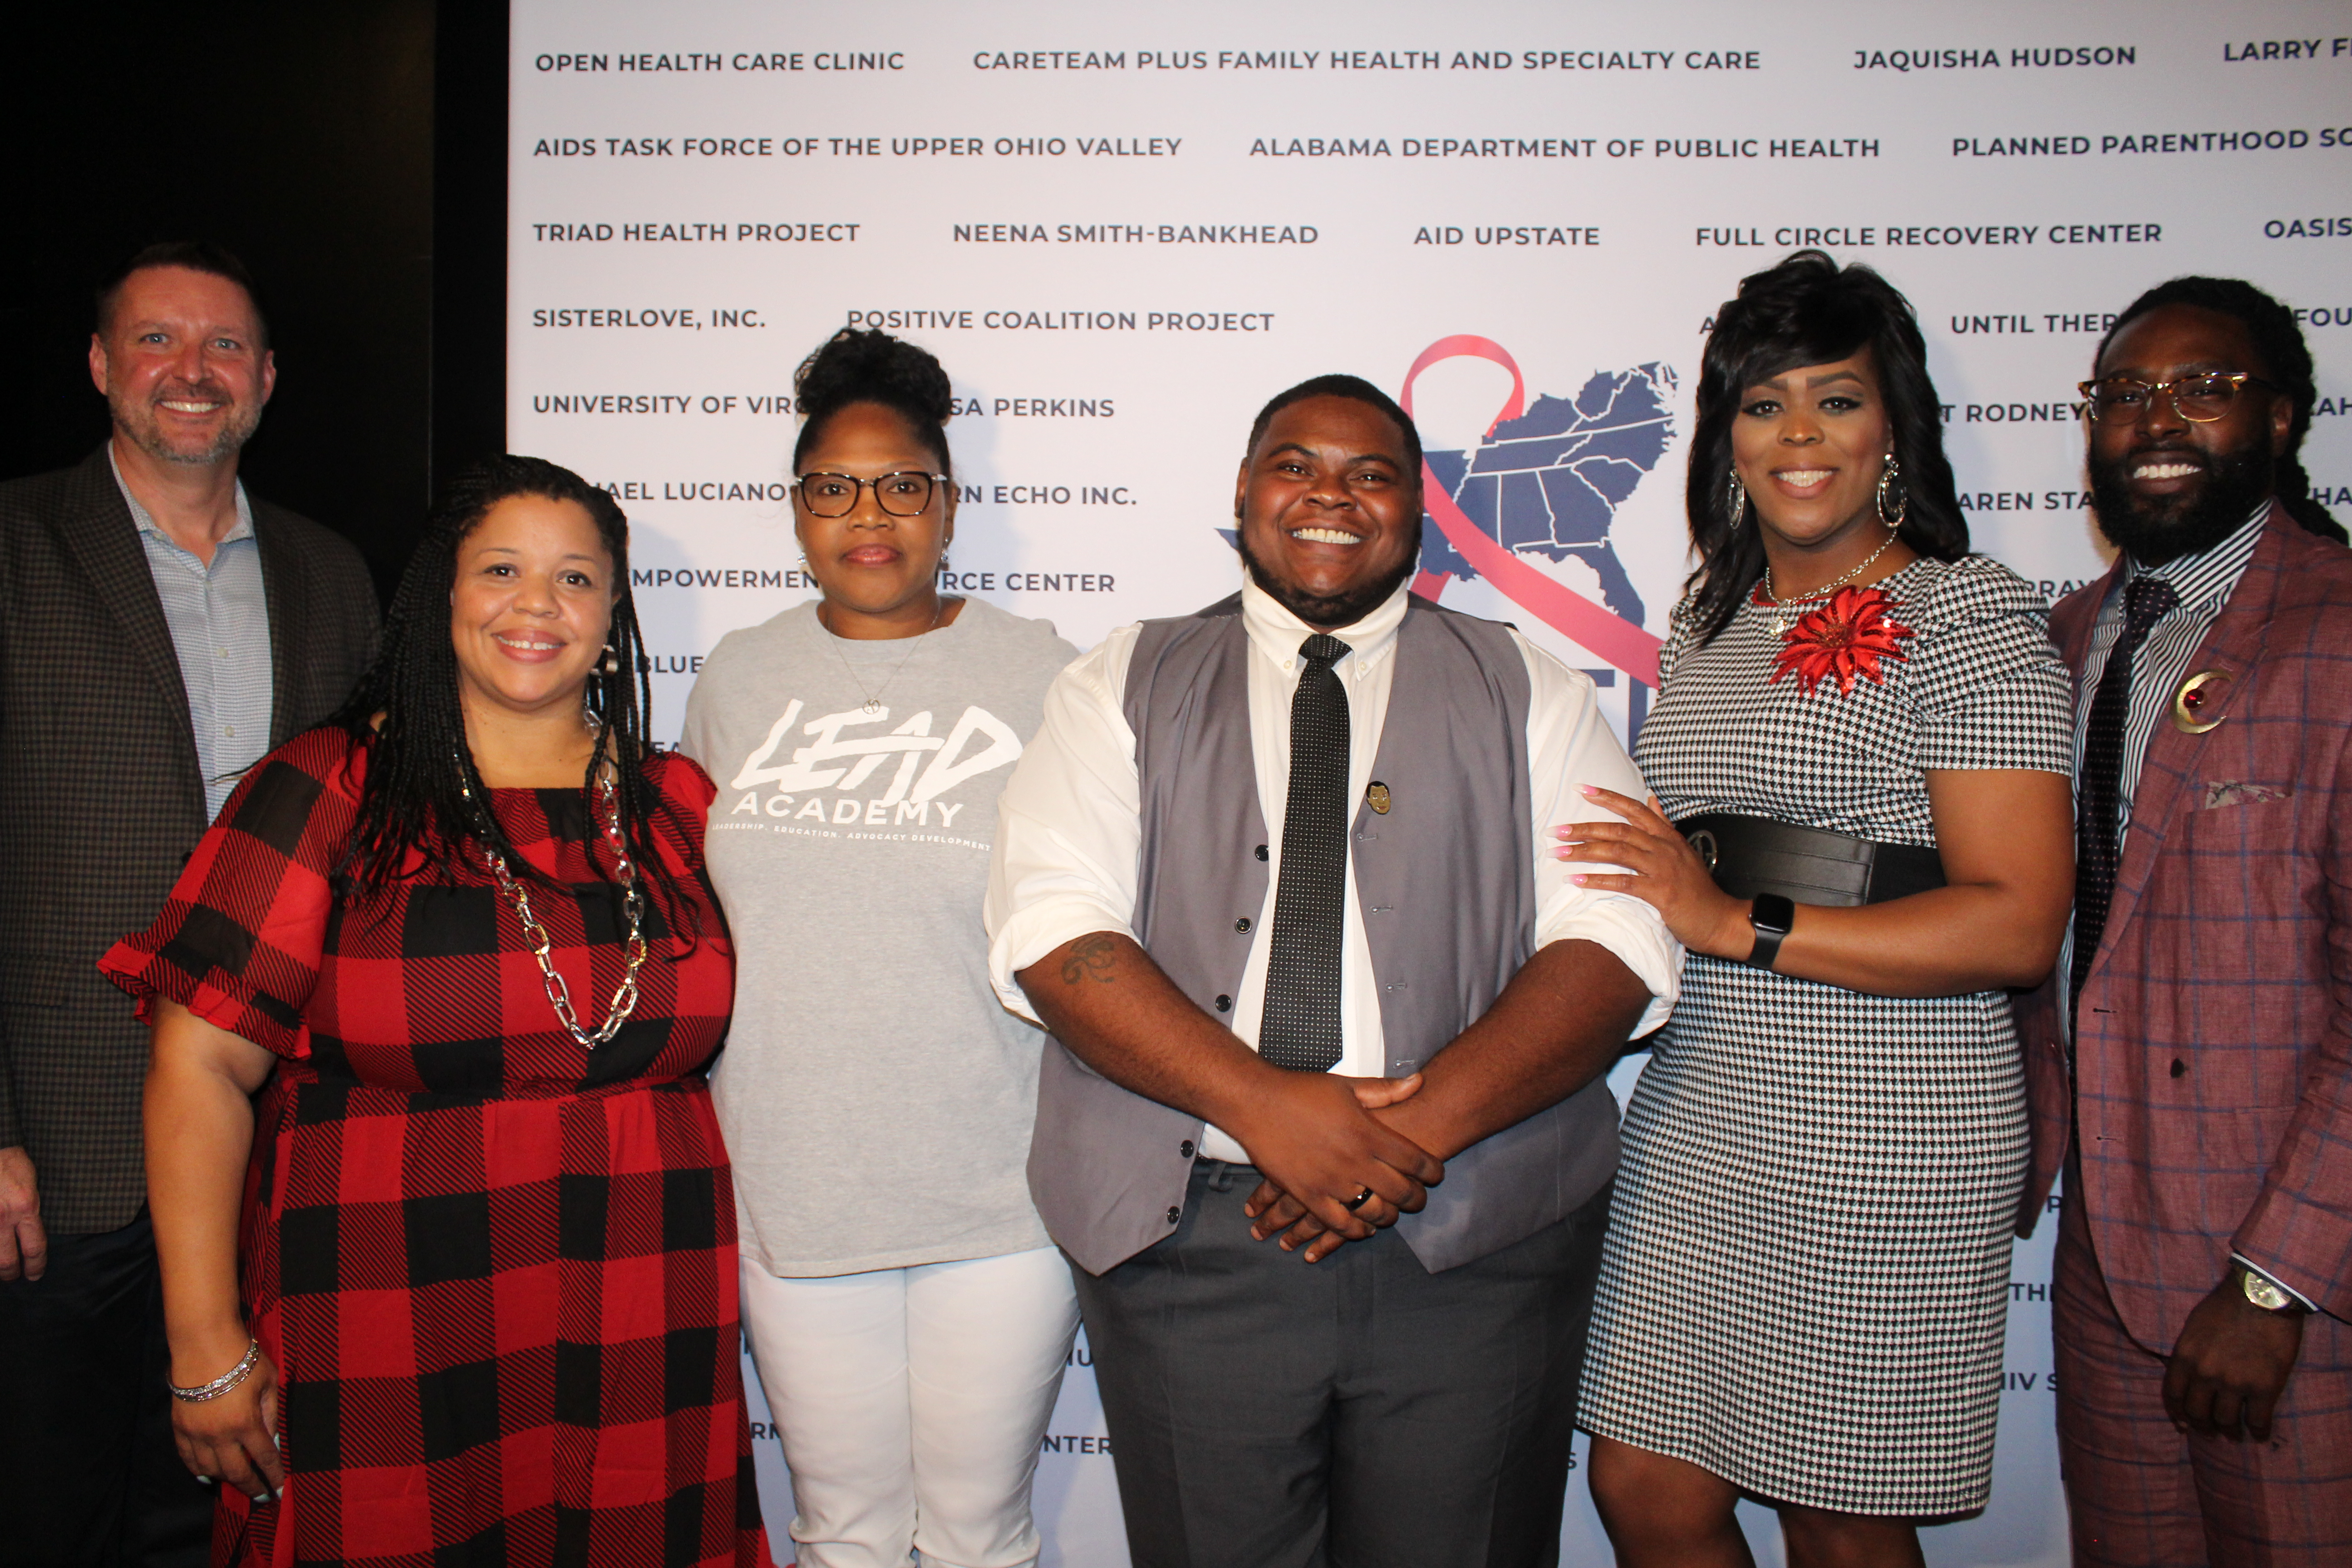 Birmingham hosts Southern HIV/AIDS Awareness Day